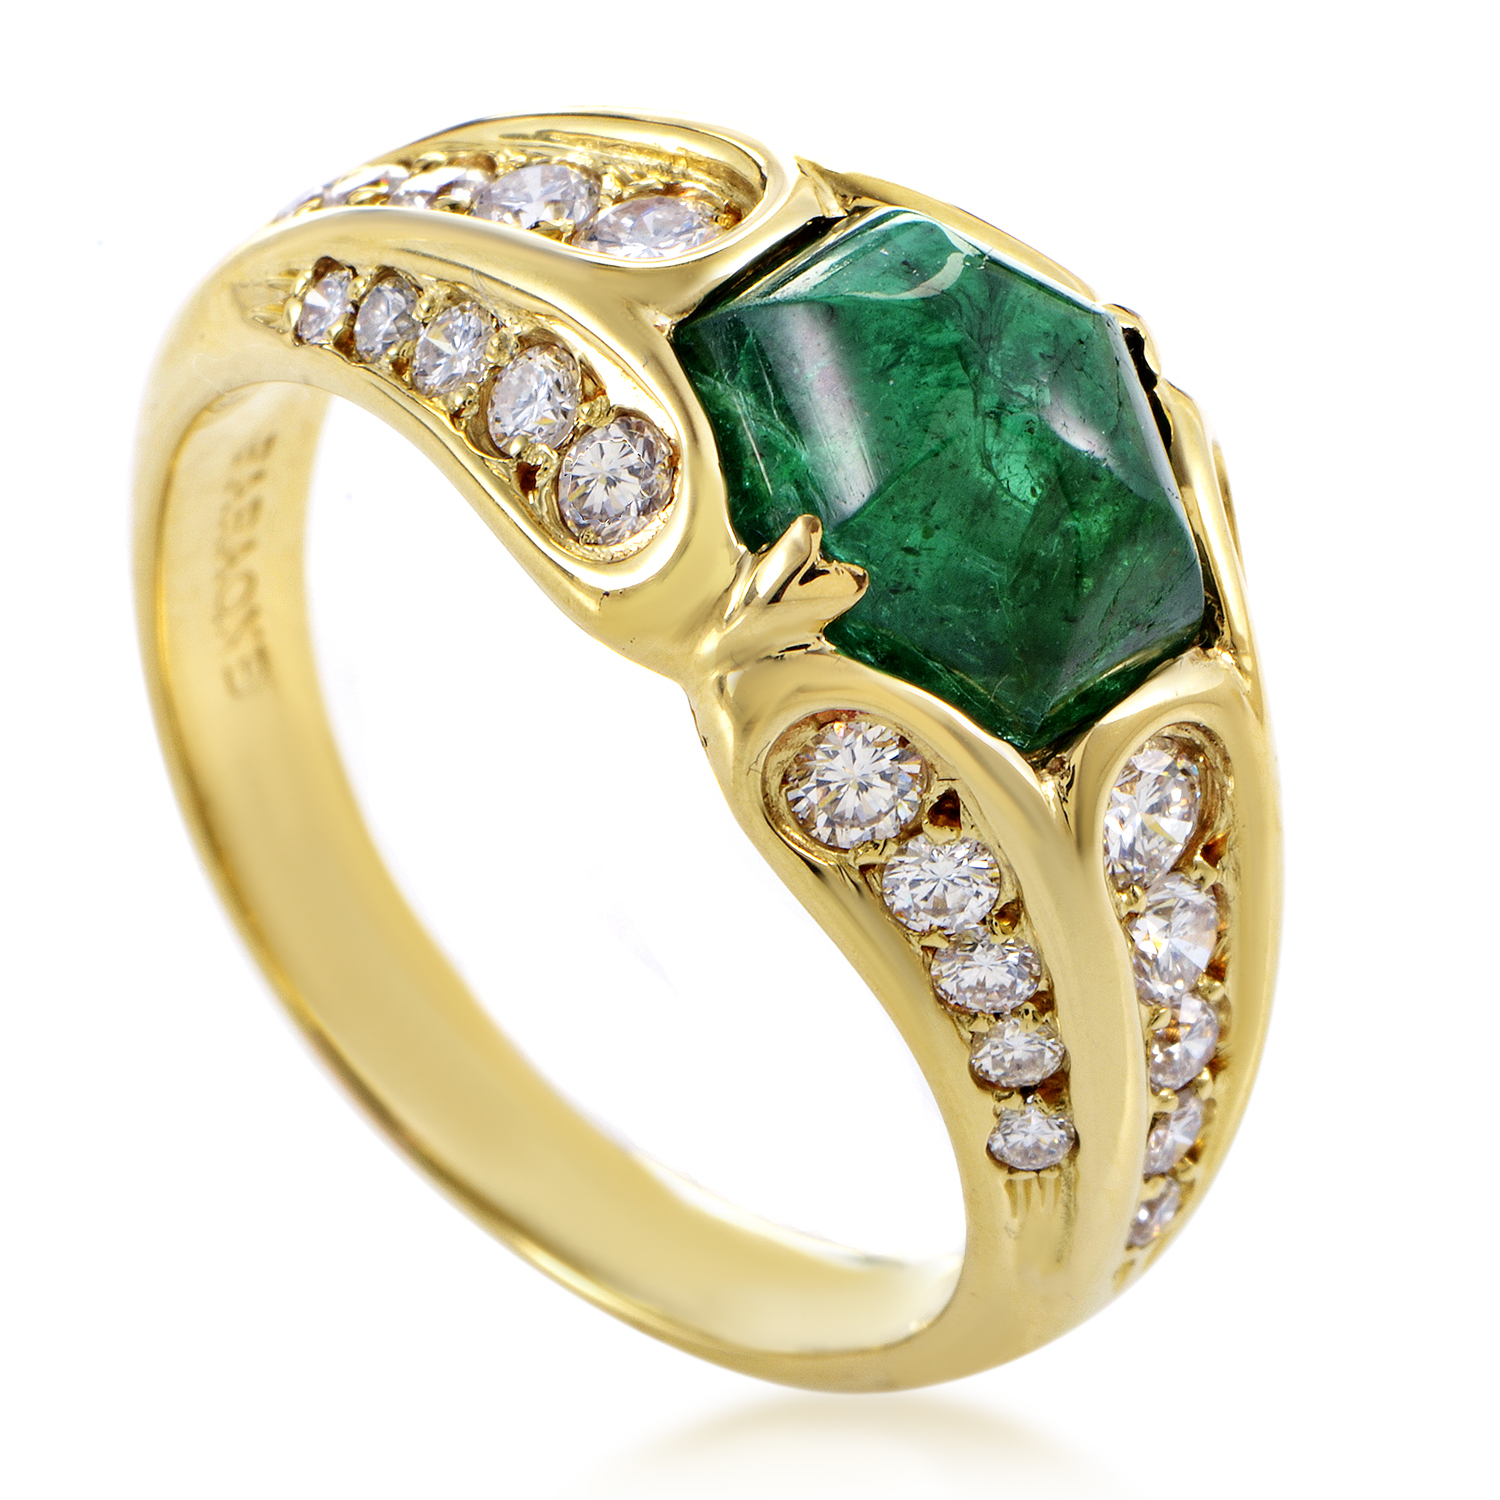 Faraone Mennella Women's 18K Yellow Gold Diamond & Emerald Ring